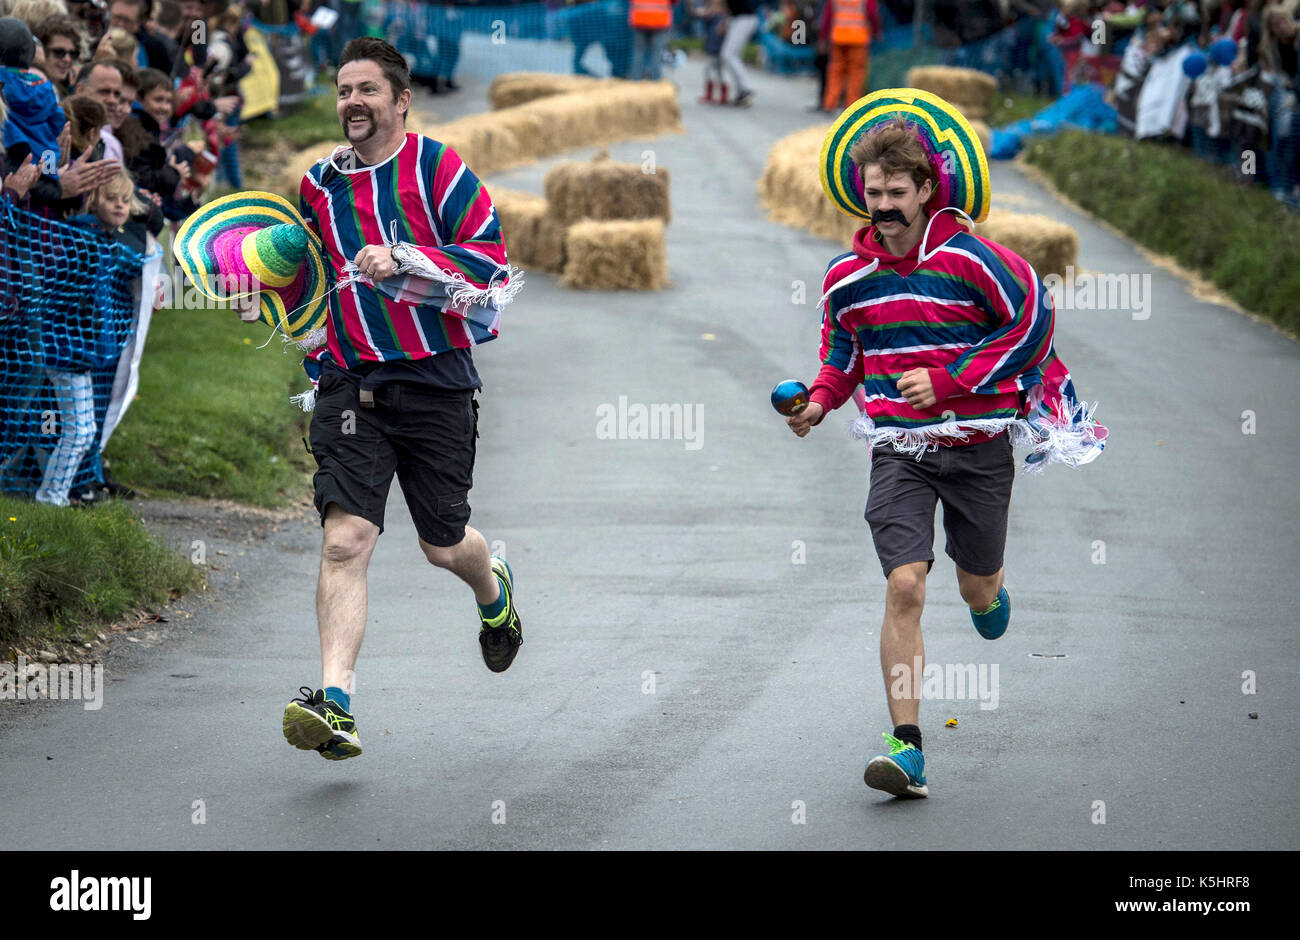 Men wearing ponchos and sombreros chase after a Donald Trump themed kart during the Gravity Grand Prix, a fundraising downhill kart race driven by gravity, following a short push at the start at Cookham Dean, Berkshire. - Stock Image